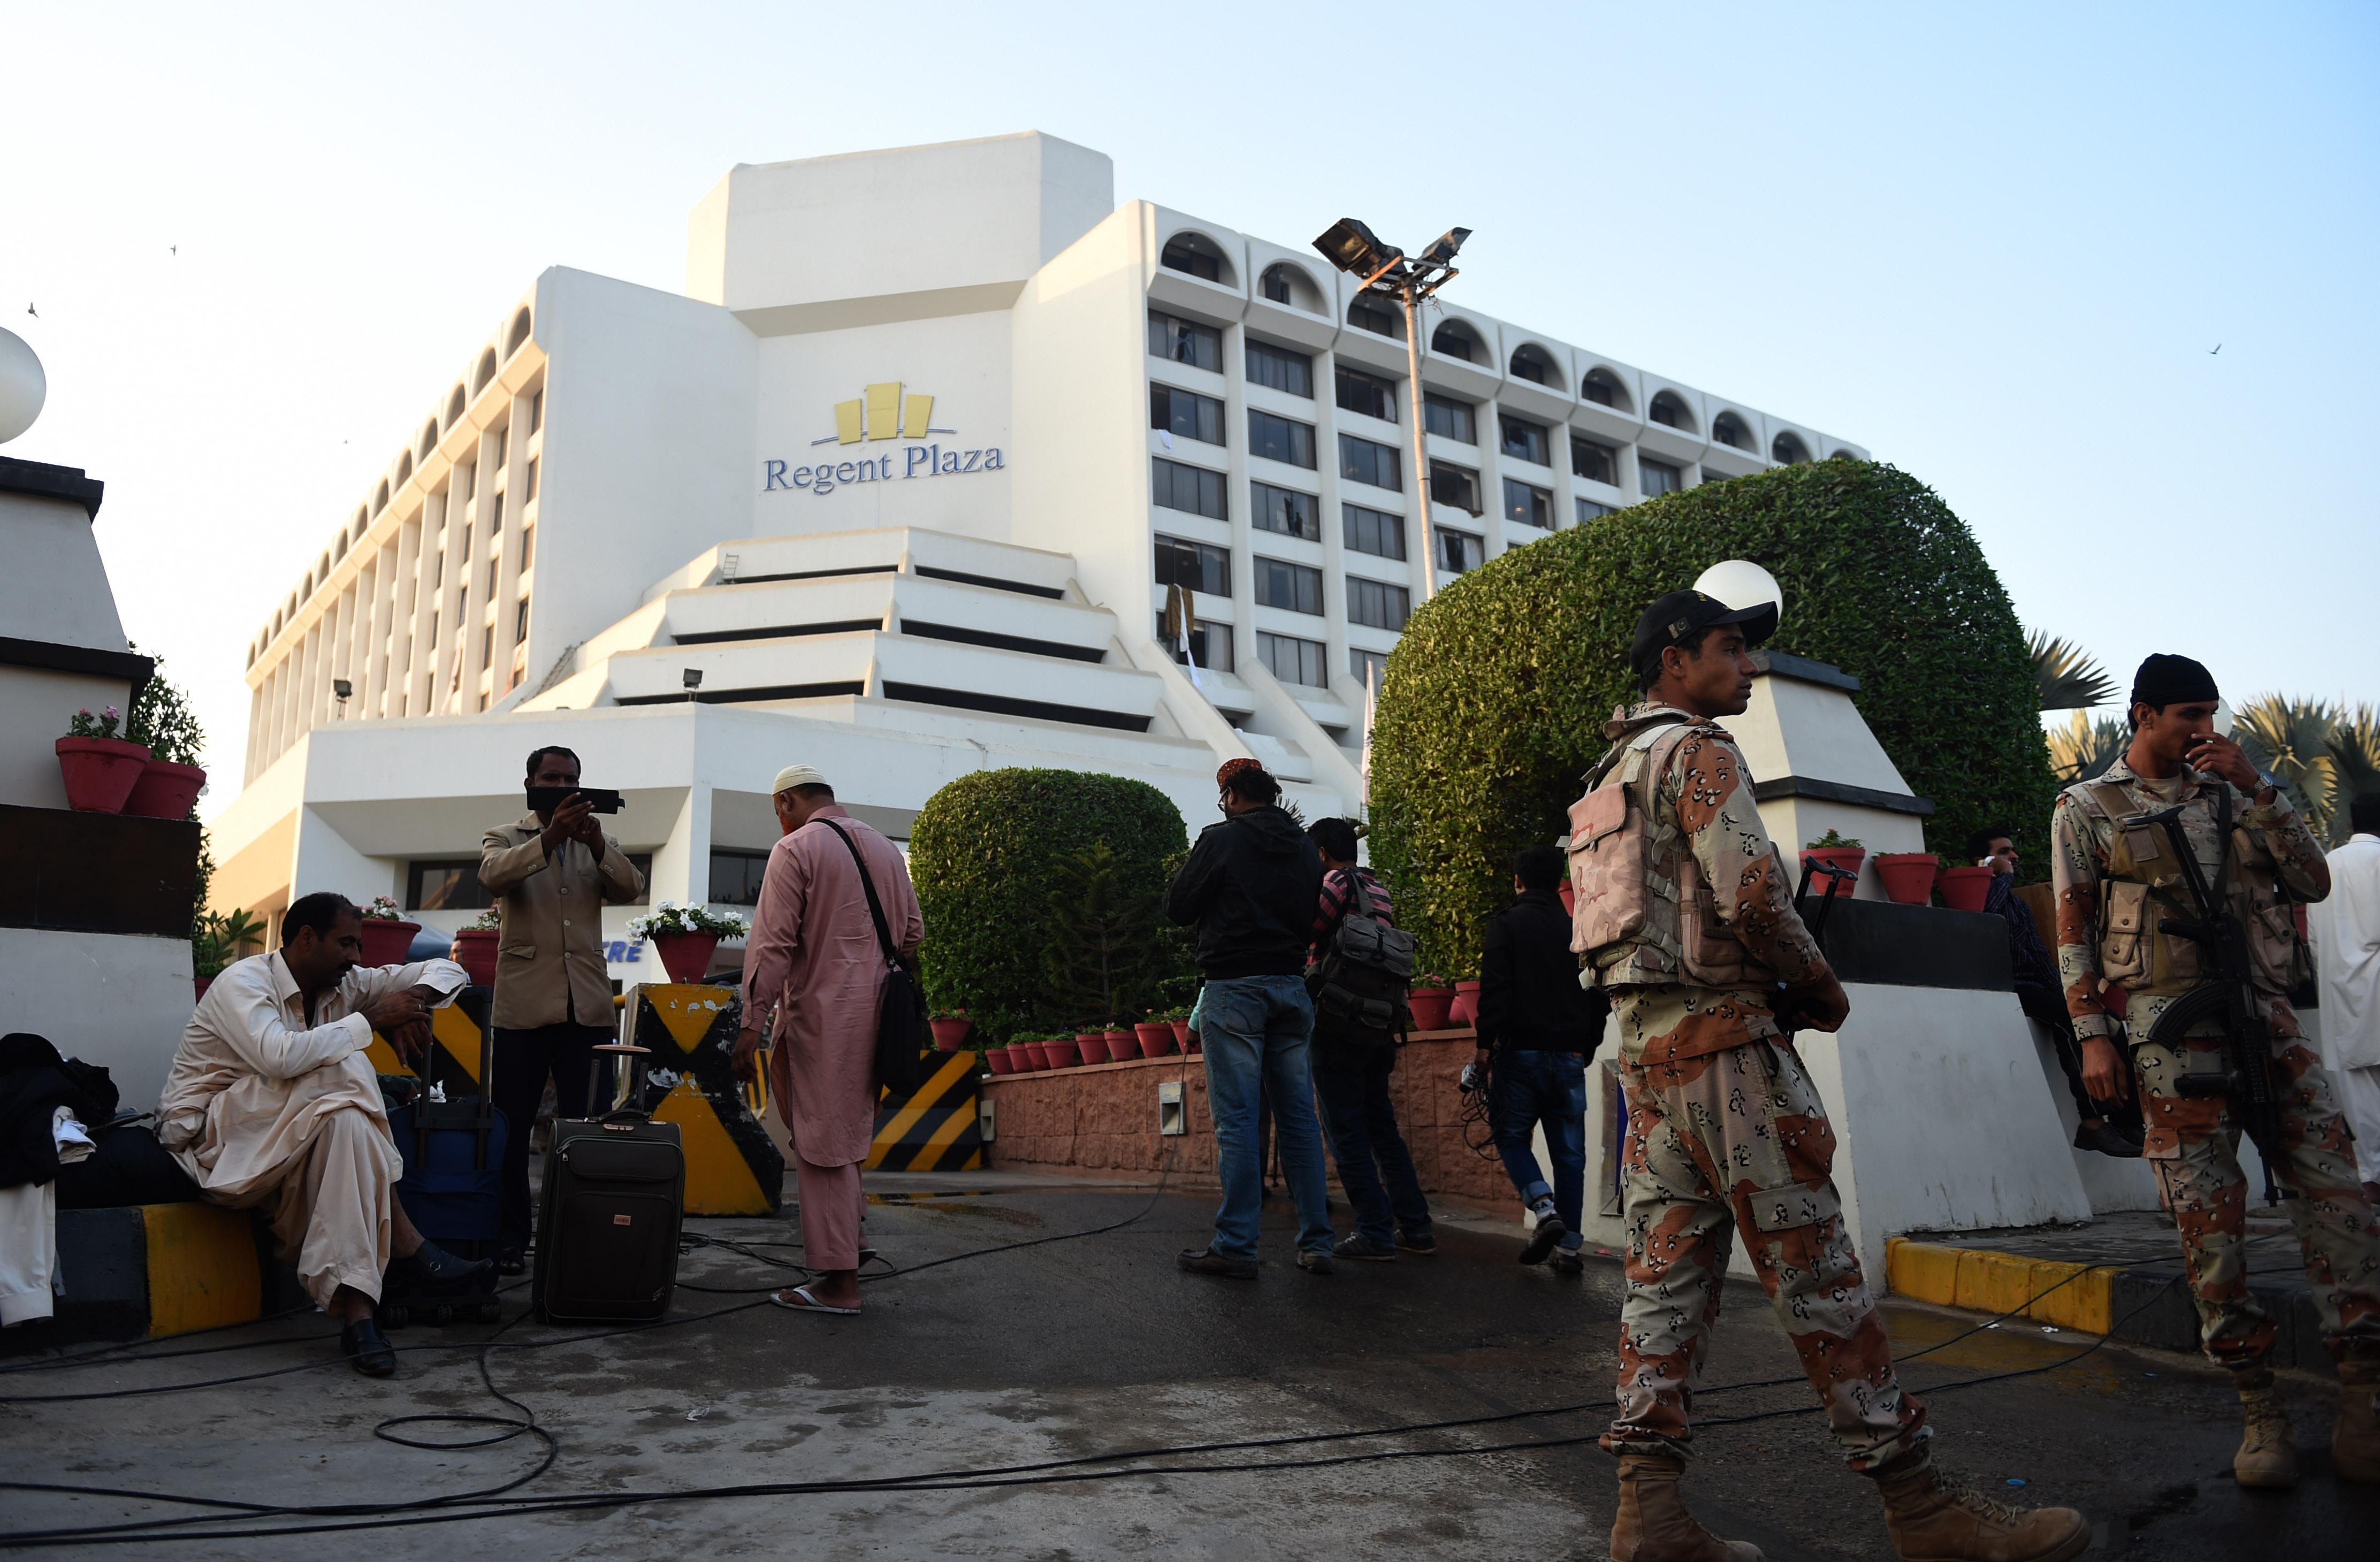 Guests gather outside the Regent Plaza Hotel following a fire in the building, located in Pakistan's port city of Karachi, on Dec. 5, 2016